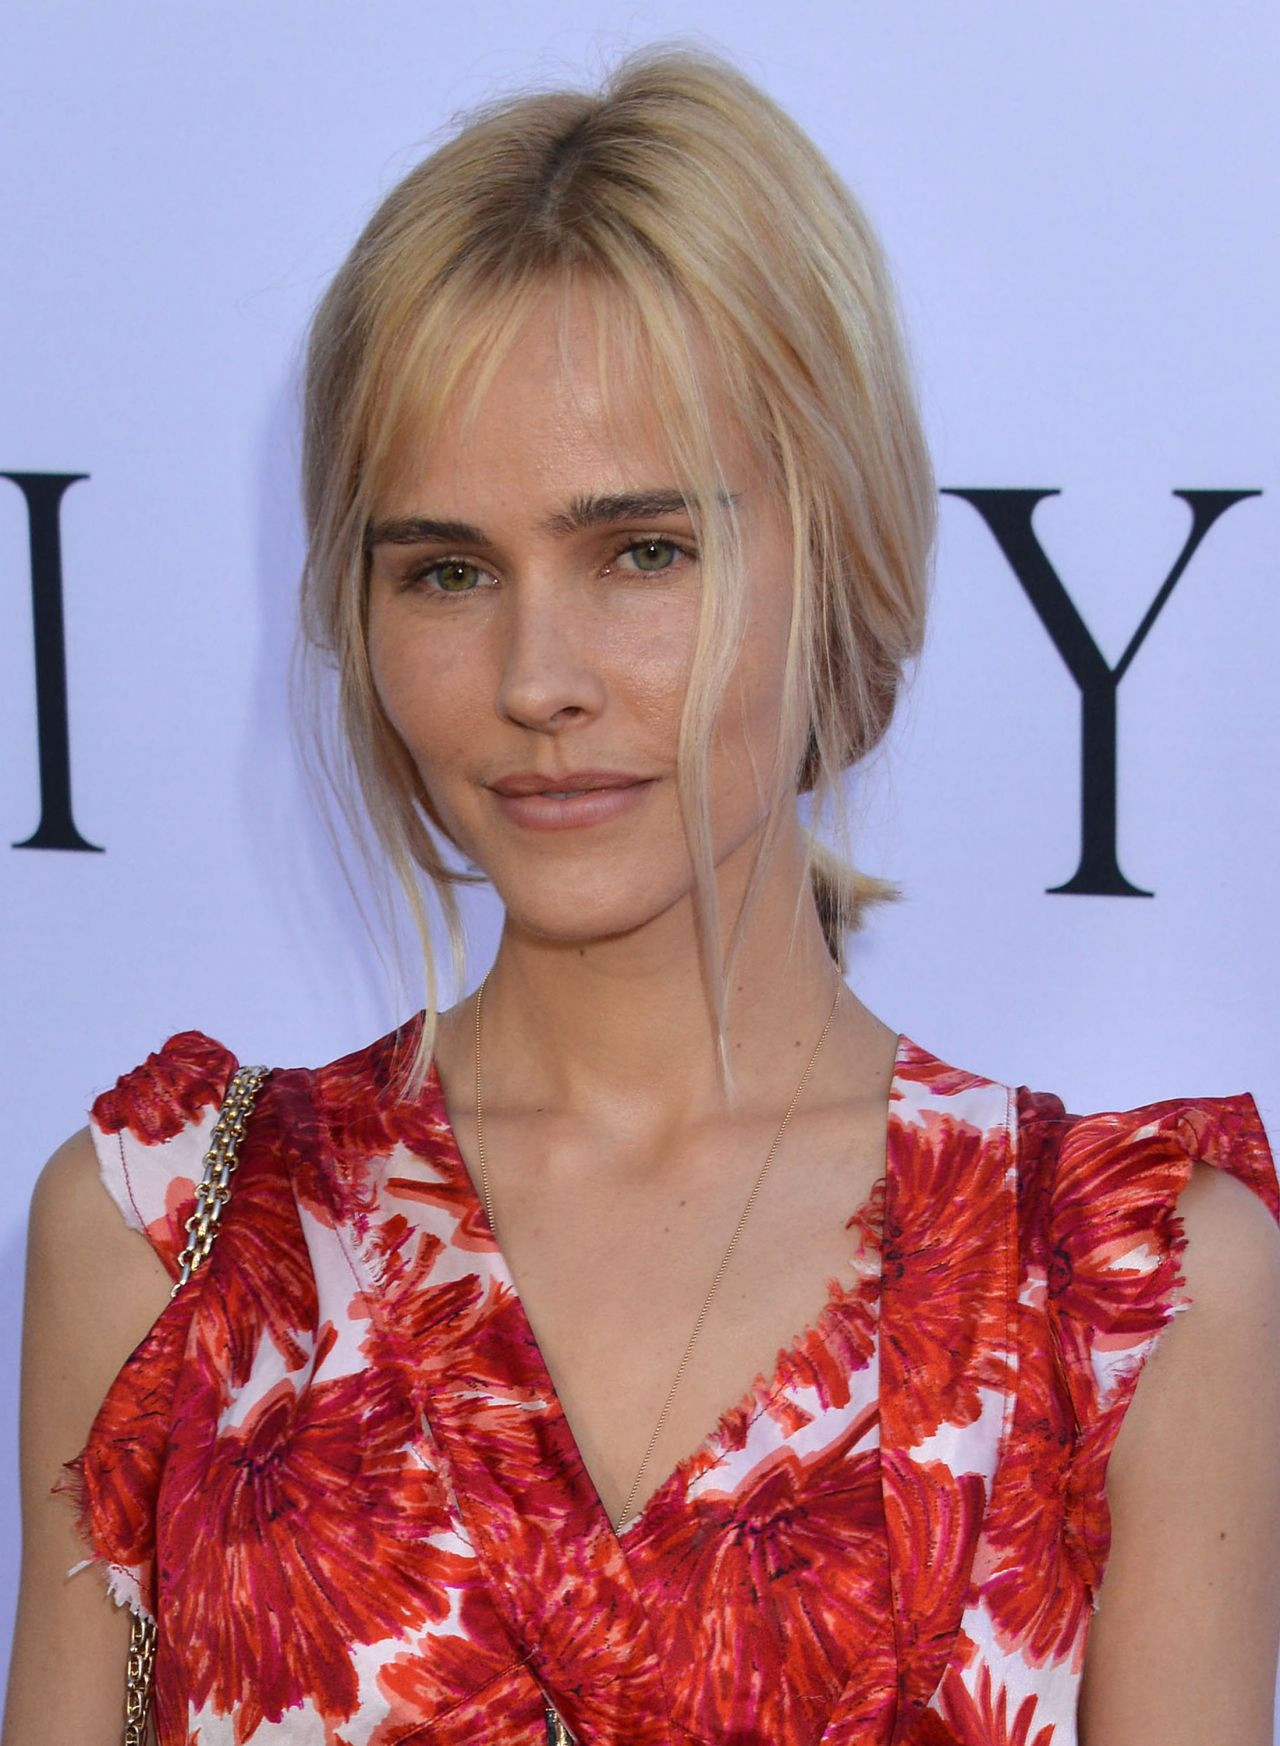 isabel lucas - photo #5